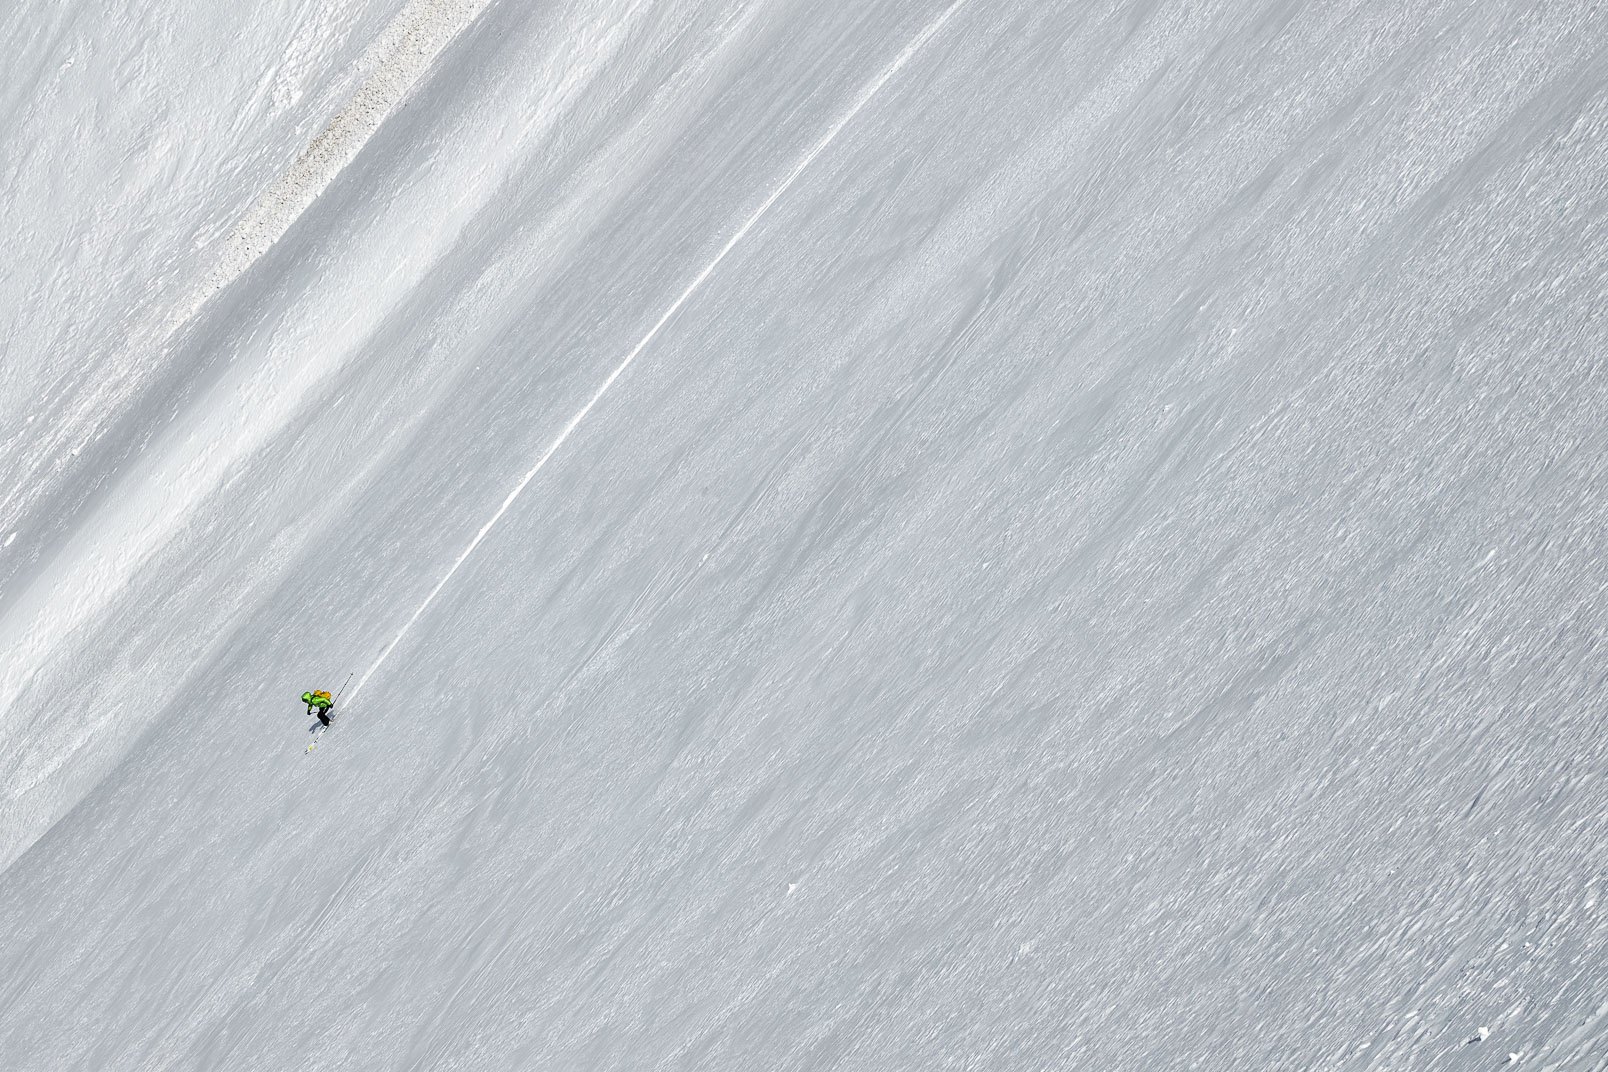 Alpine Skitouring | Stefan Kuerzi - Adventure Photography